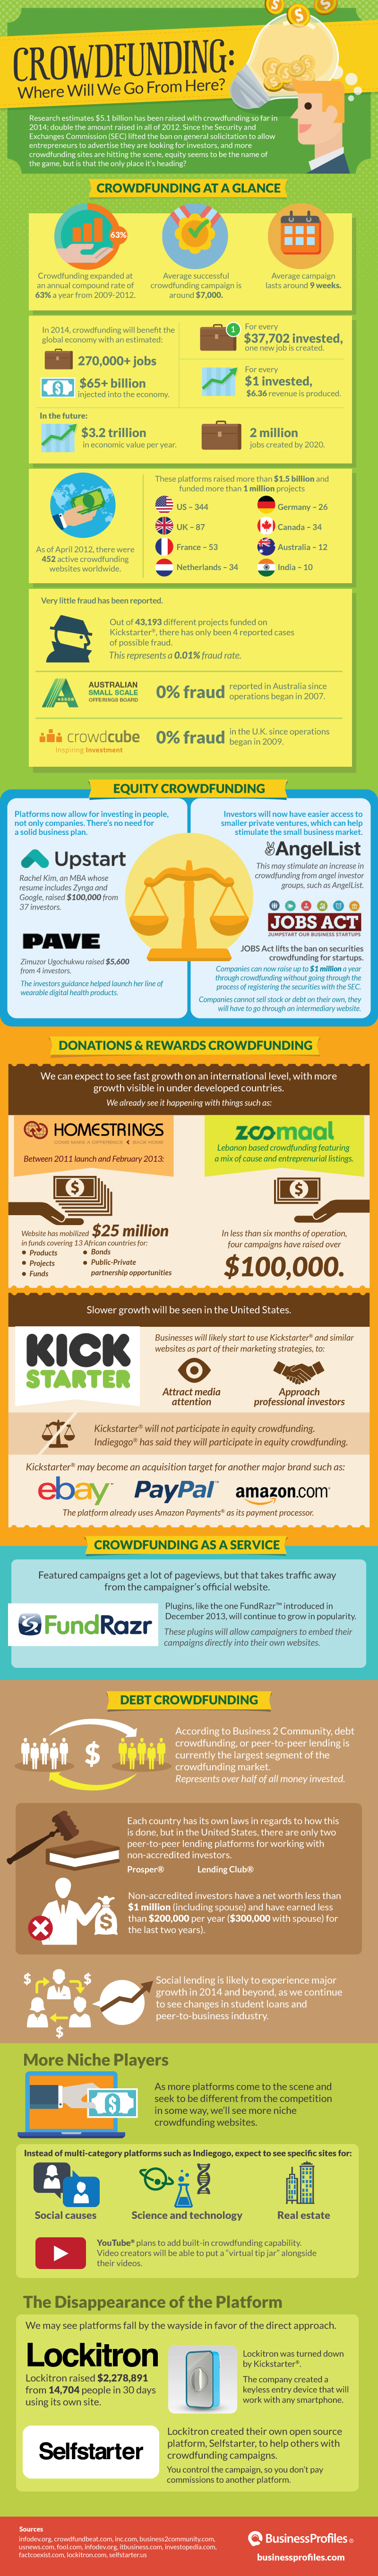 Crowdfunding: Where Will We Go From Here?